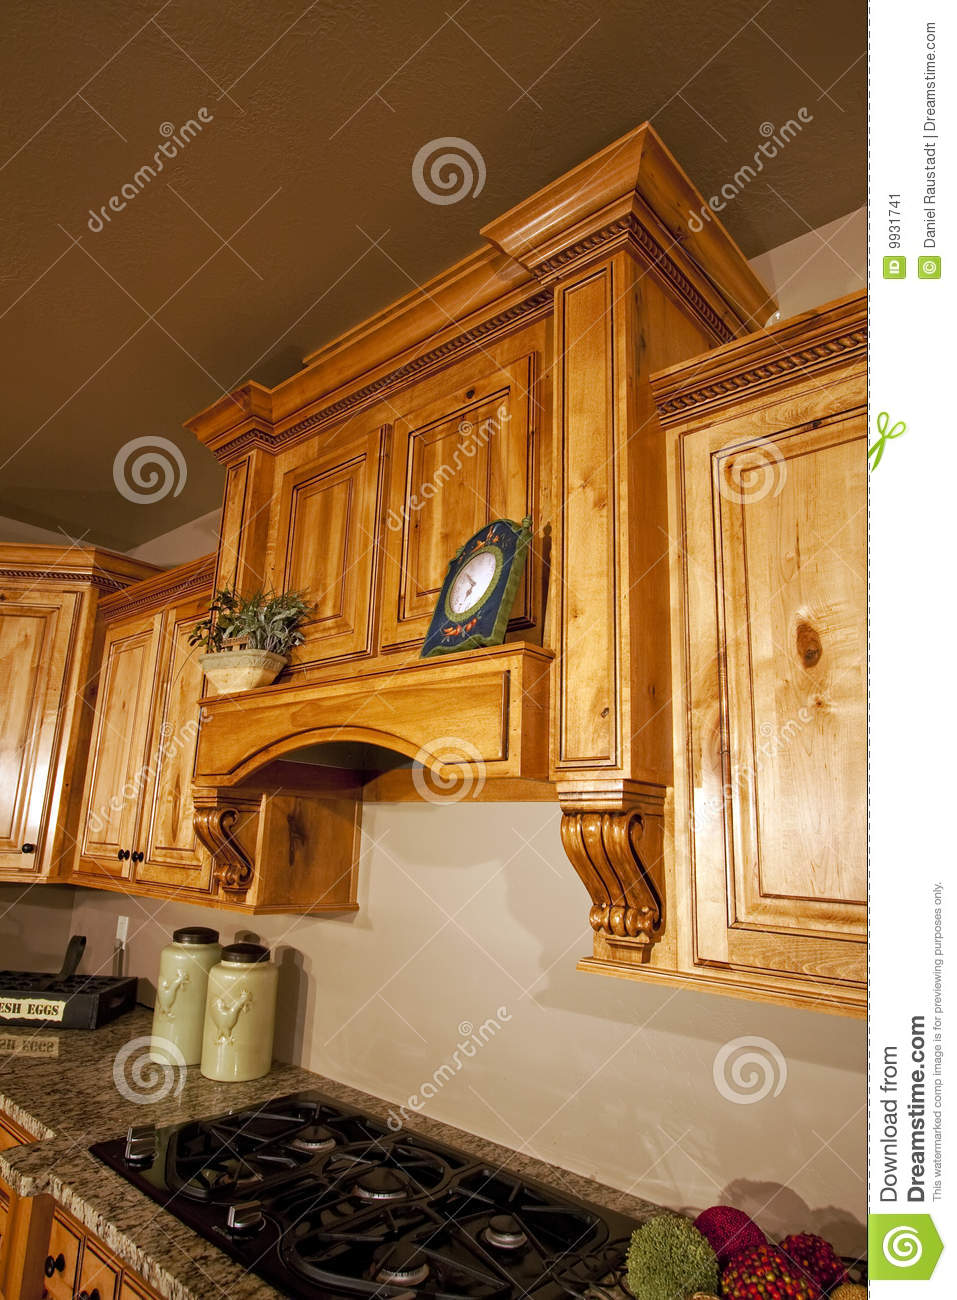 modern kitchen cabinets range hood stock image image small kitchen island with stove and oven